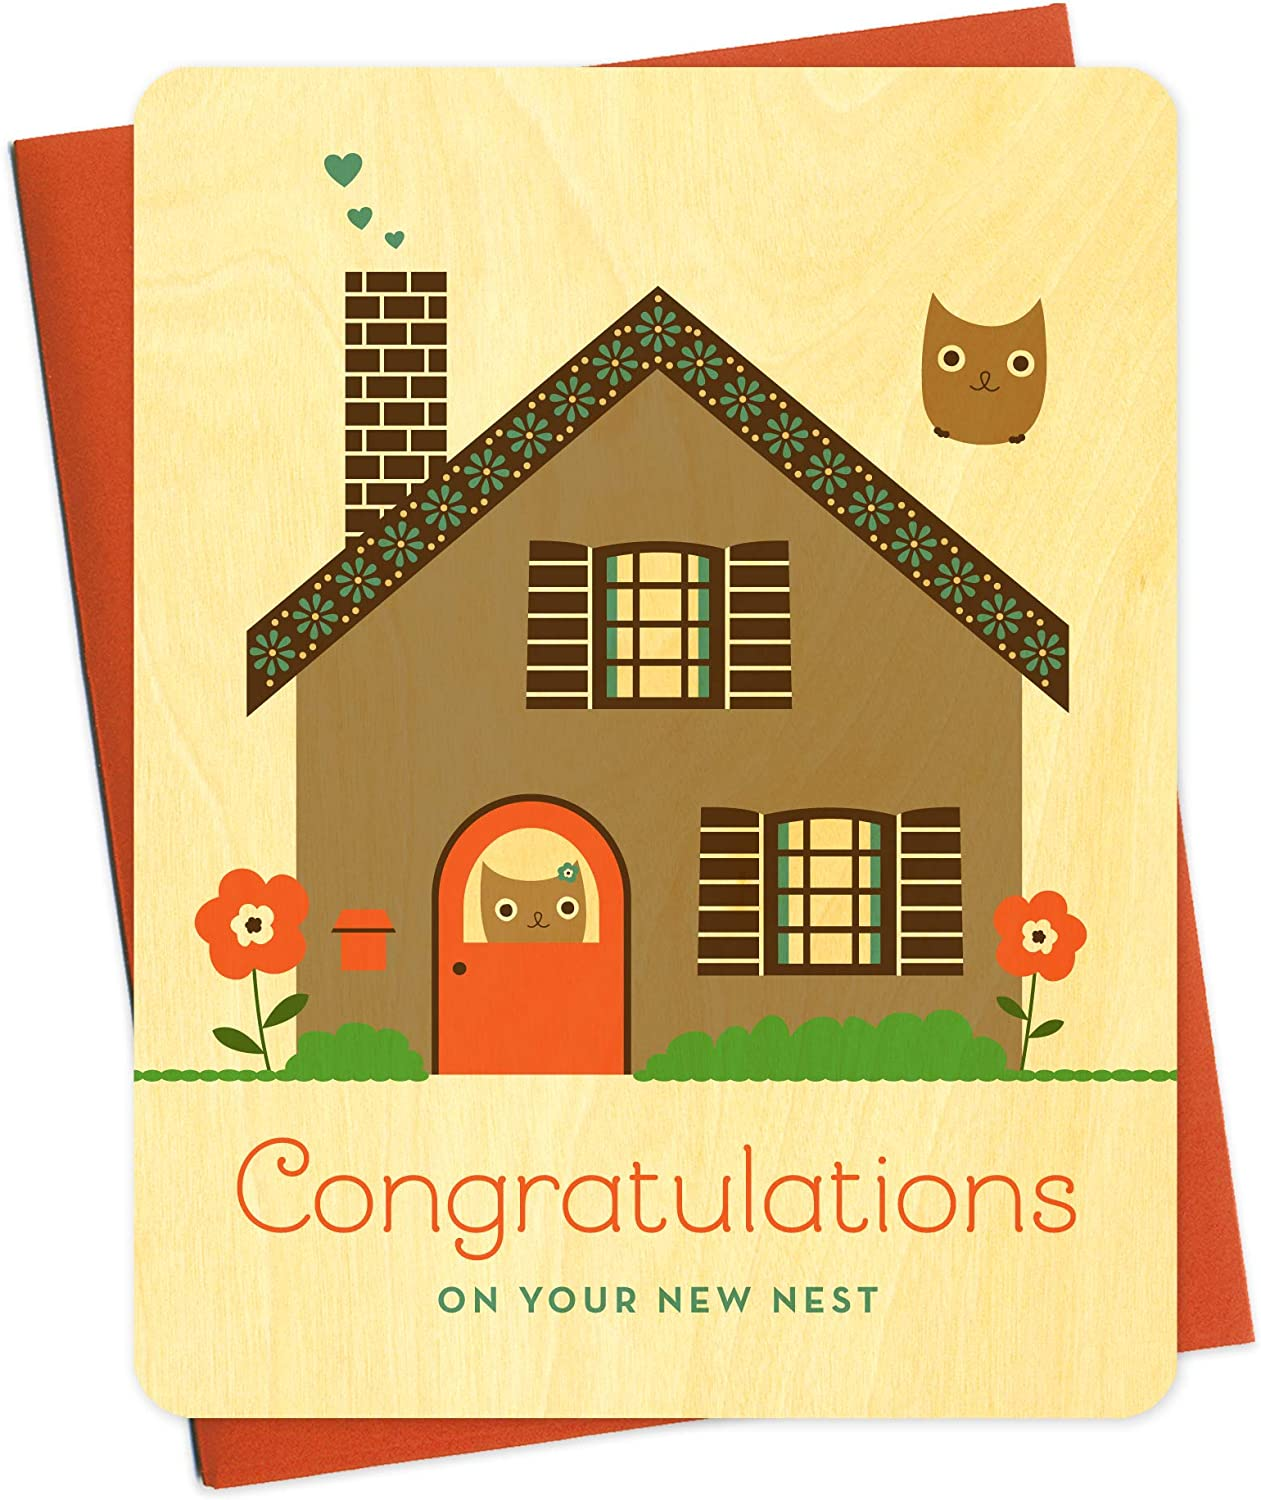 New Nest Wood Congratulations Card by Night Owl Paper Goods